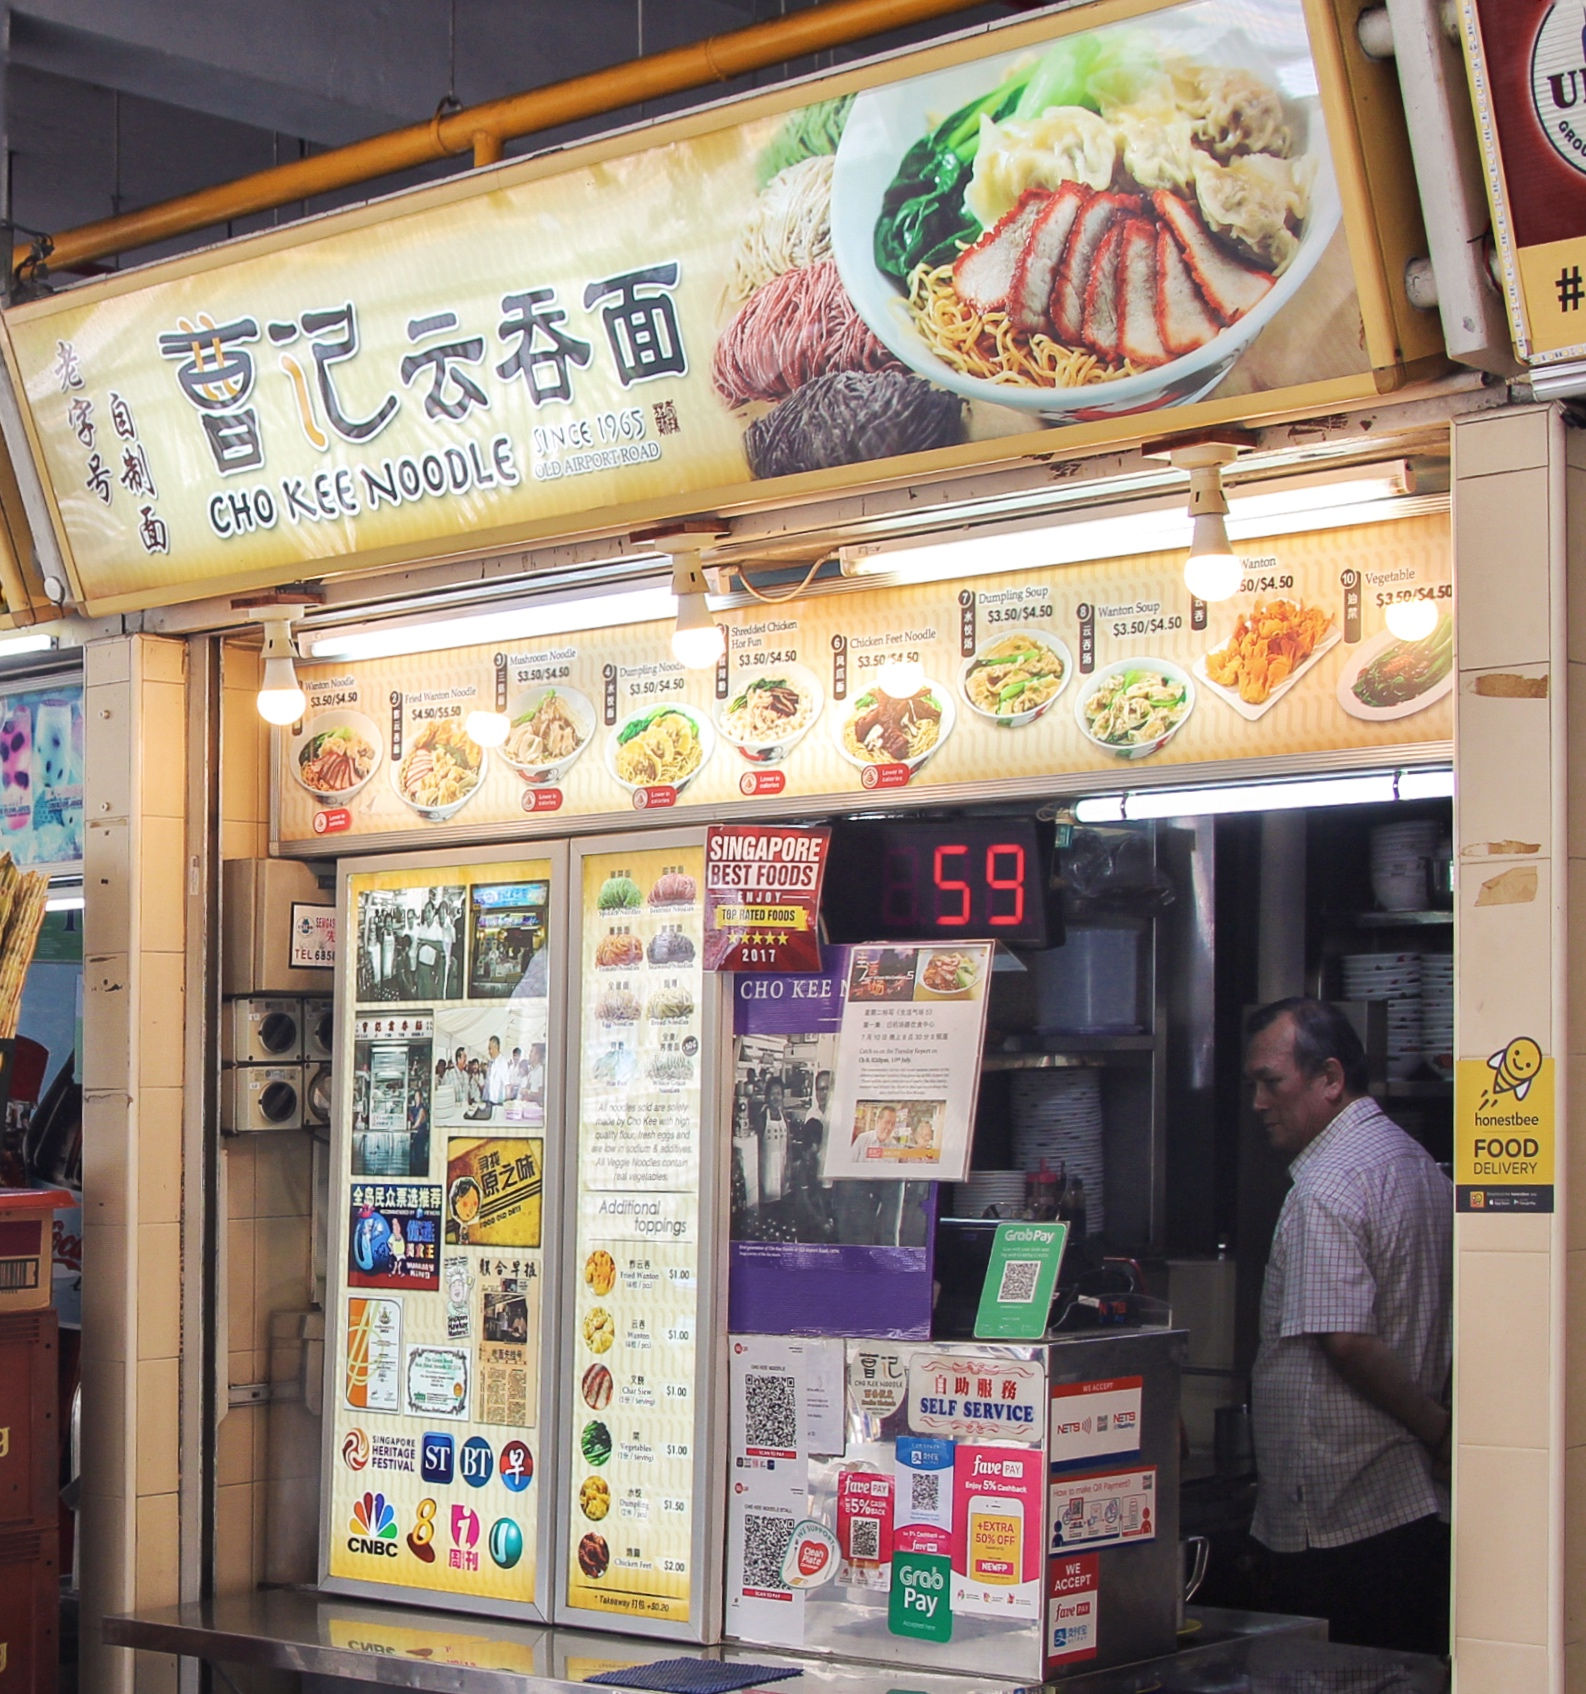 Cho Kum Kong awaits customers inside Cho Kee Noodle stall in the Old Airport Road hawker center.